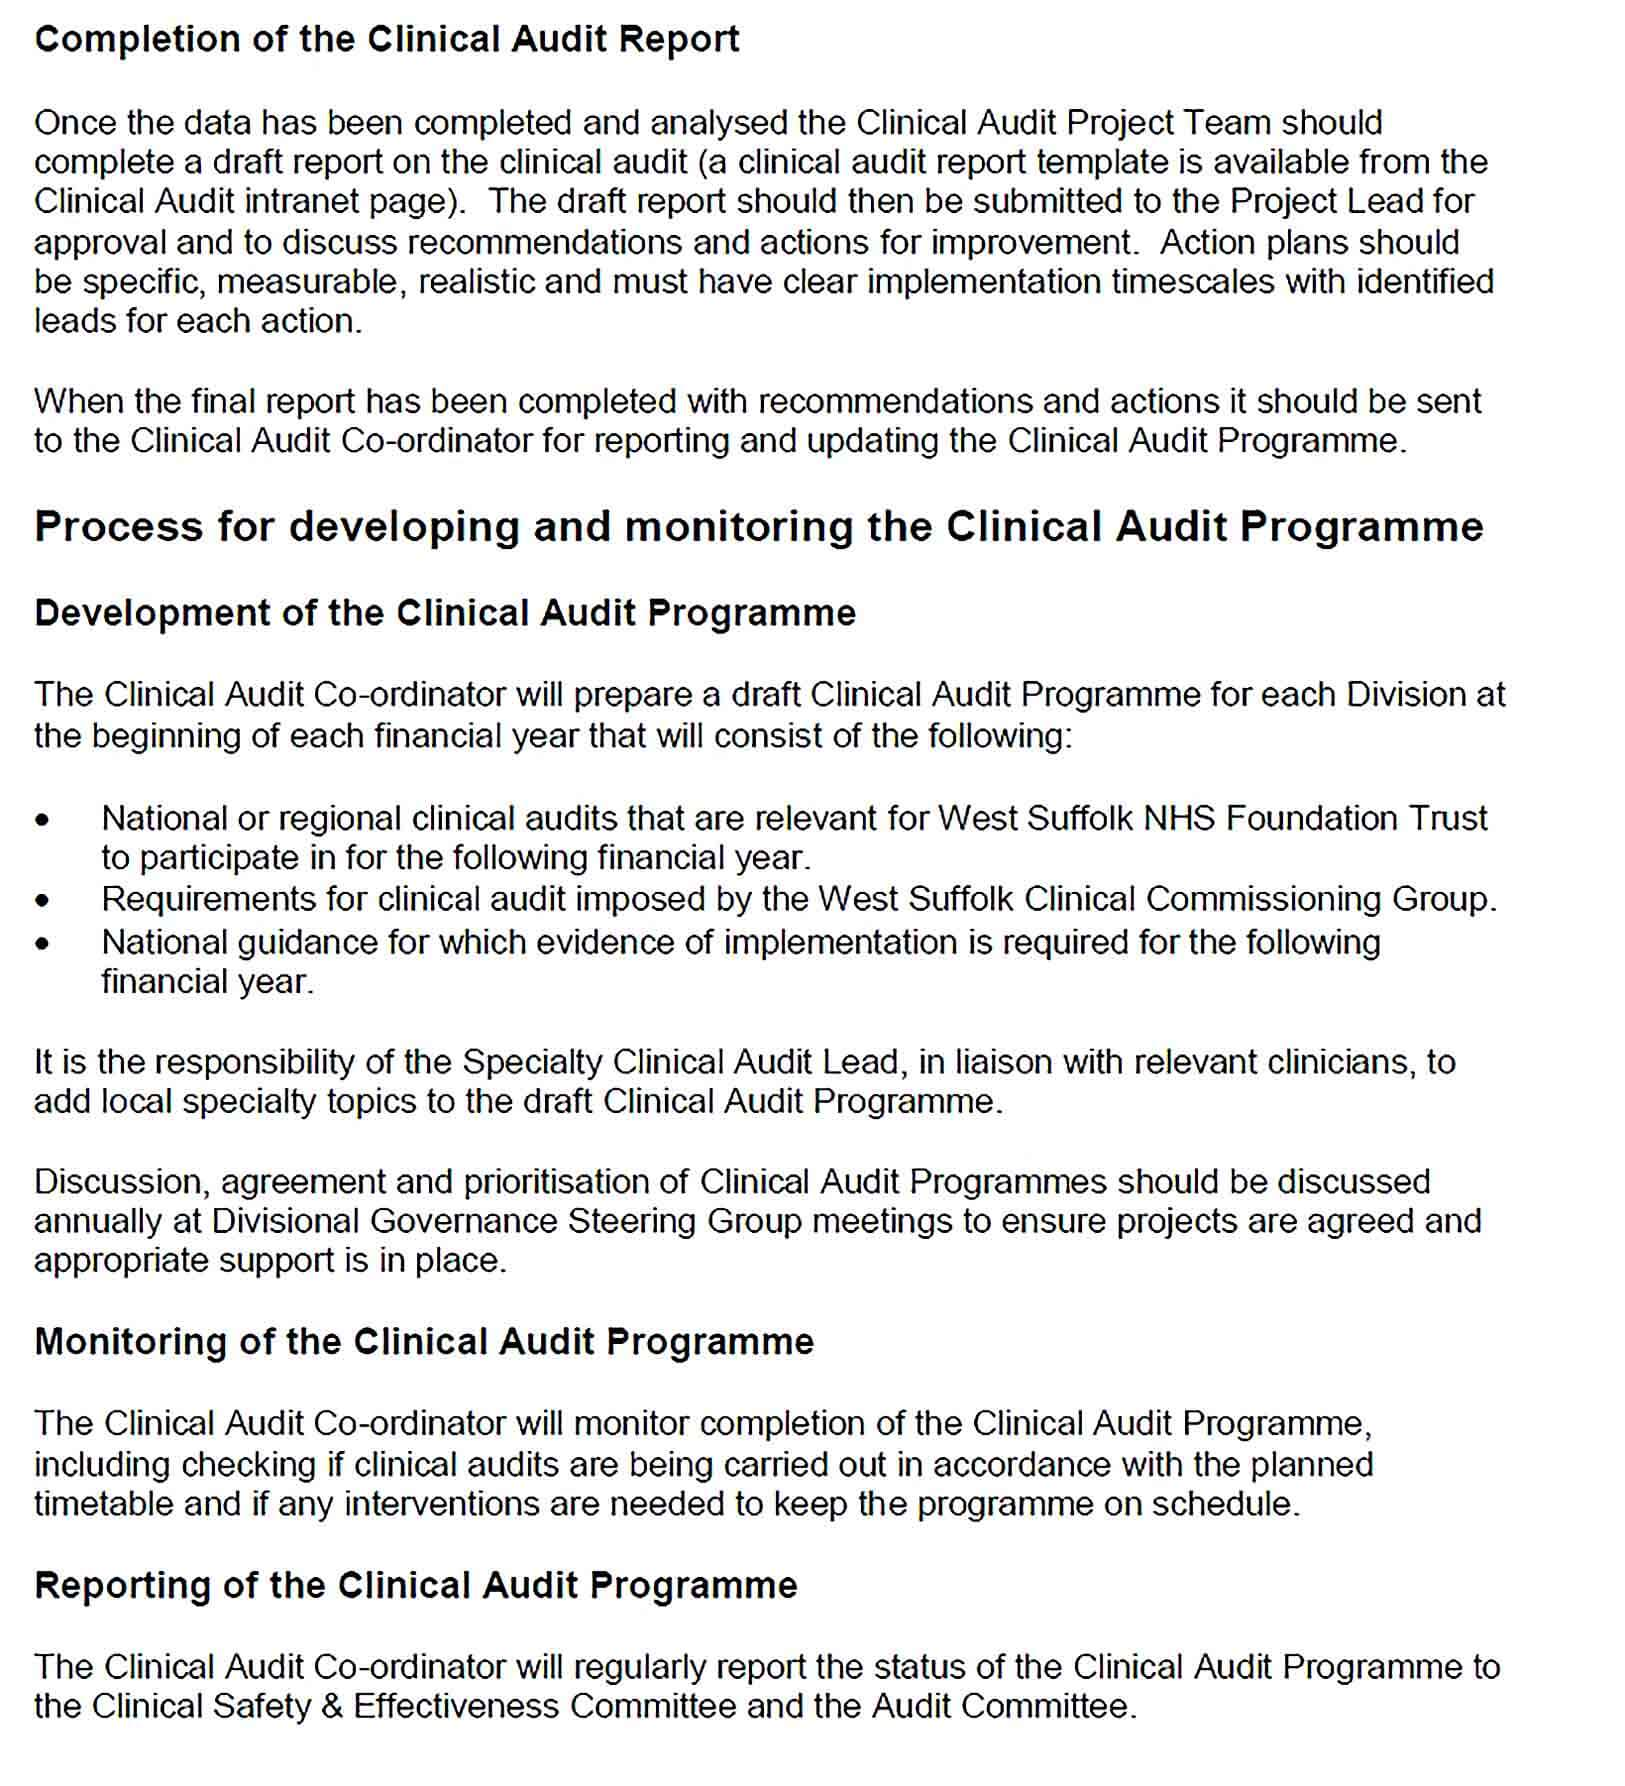 Sample Orthotic Department Clinical Audit Report Template